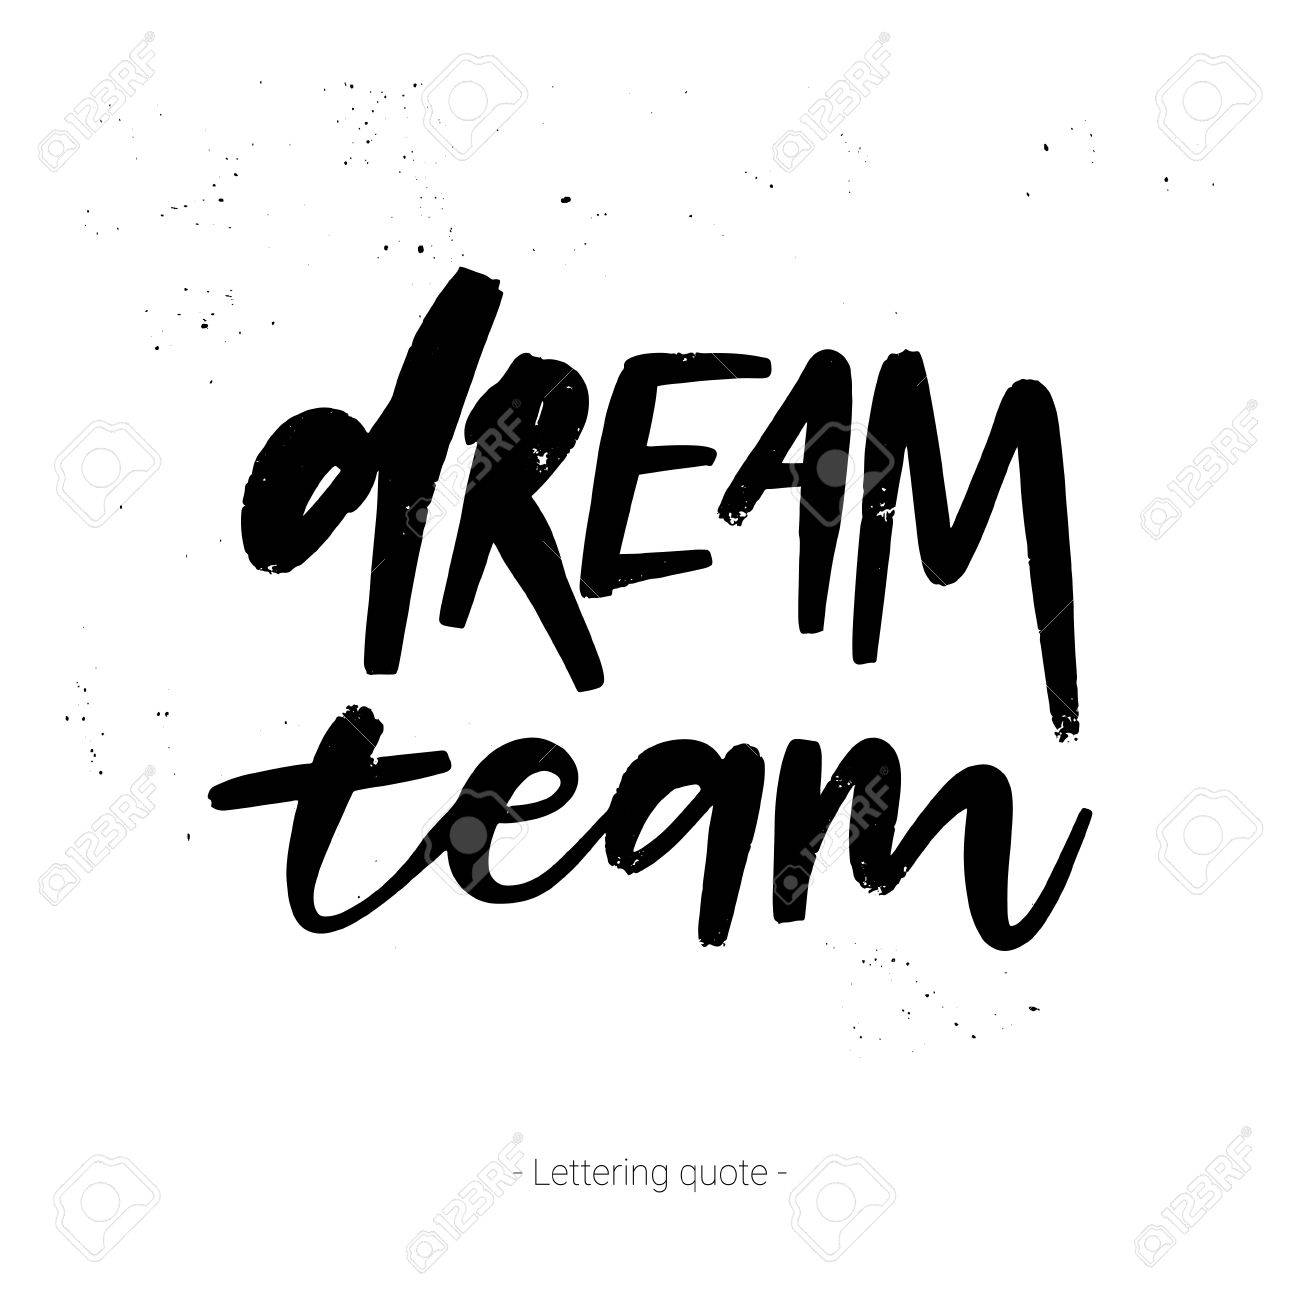 Dream team clipart graphic royalty free stock Dream Team Cliparts 12 - 1300 X 1300 - Making-The-Web.com graphic royalty free stock